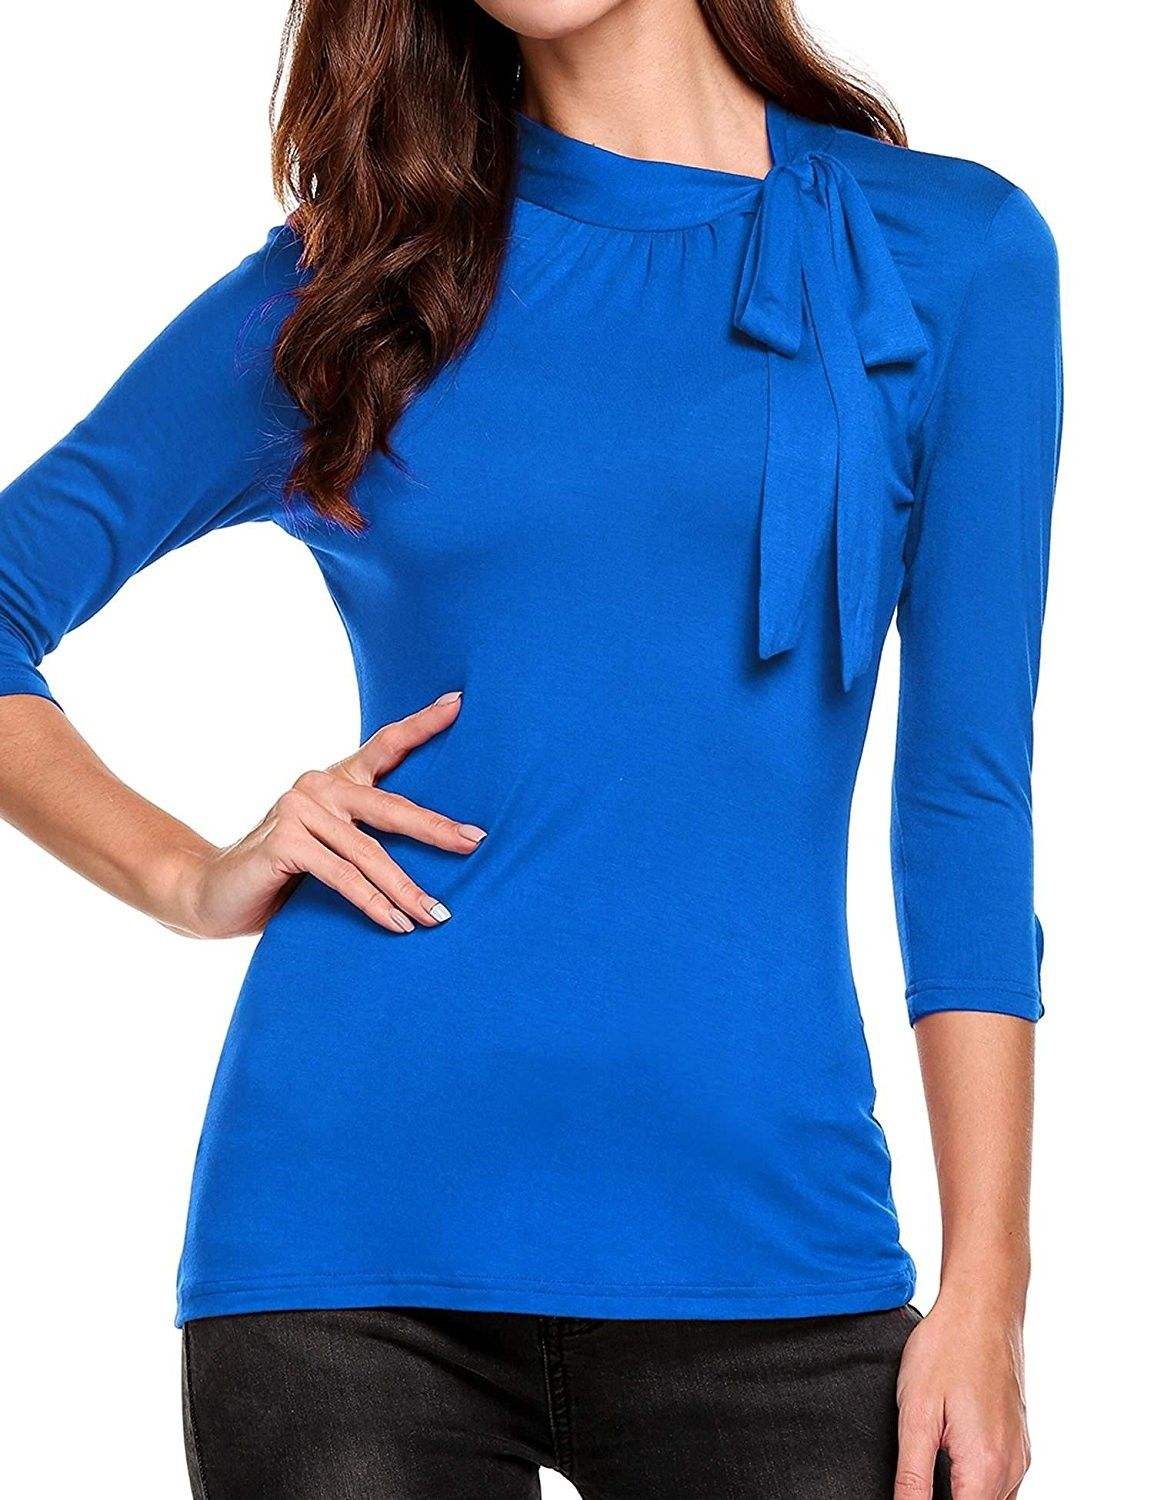 f64288b97e3 Tie-Bow Neck Cuffed Sleeve Slim Solid 3/4 Sleeve Blouse For Work ...